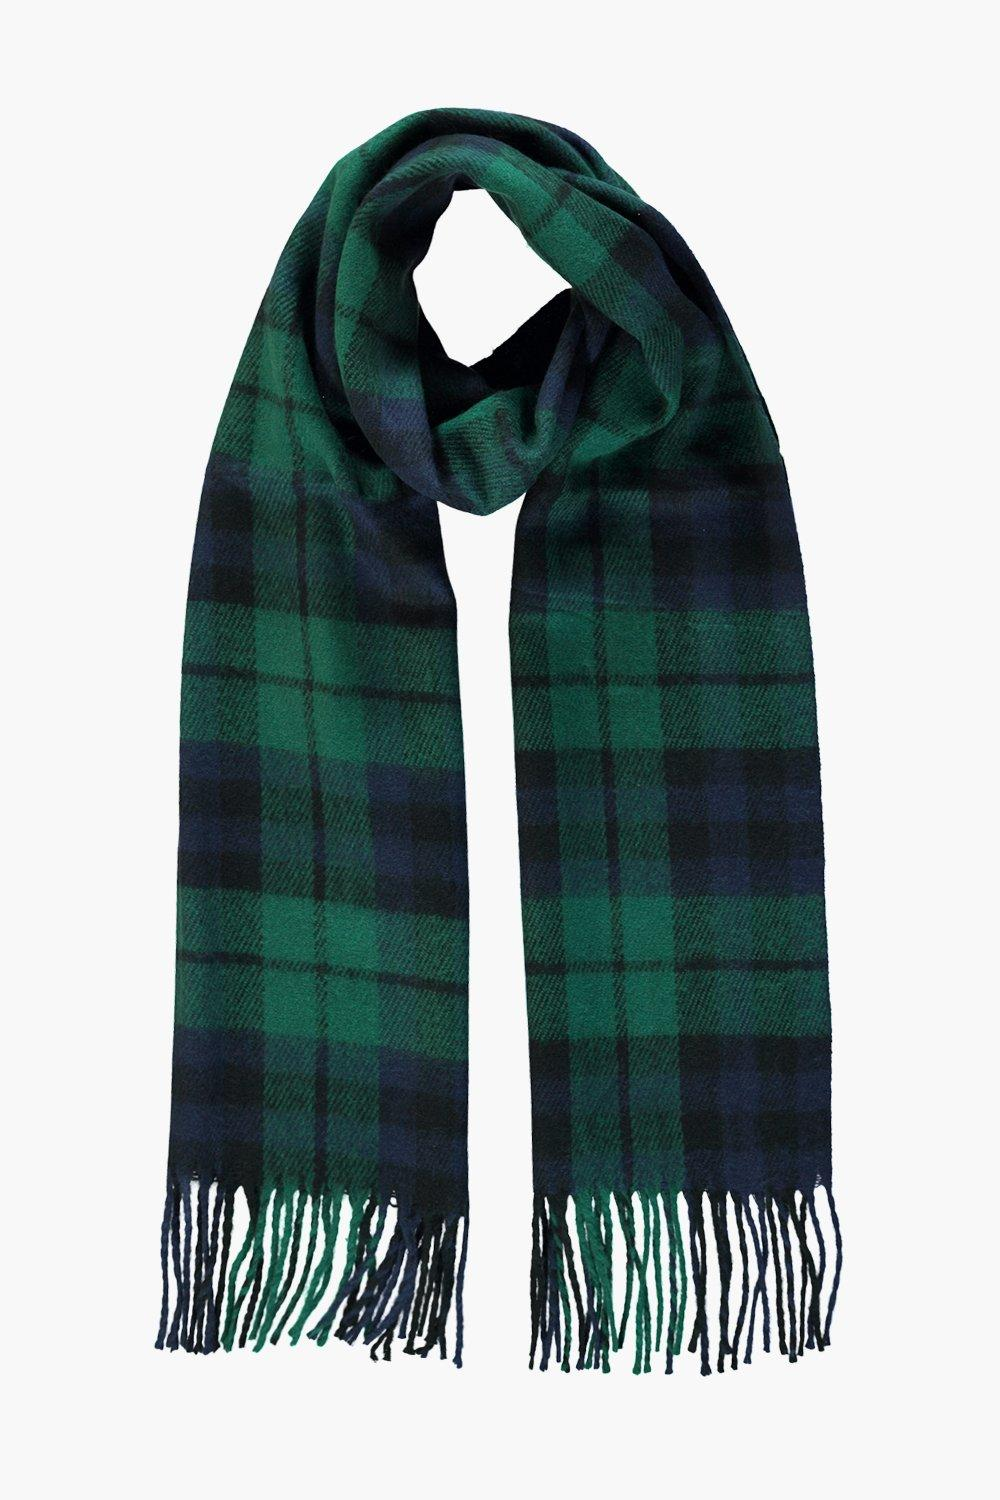 Emily Bottle Green Brushed Check Scarf